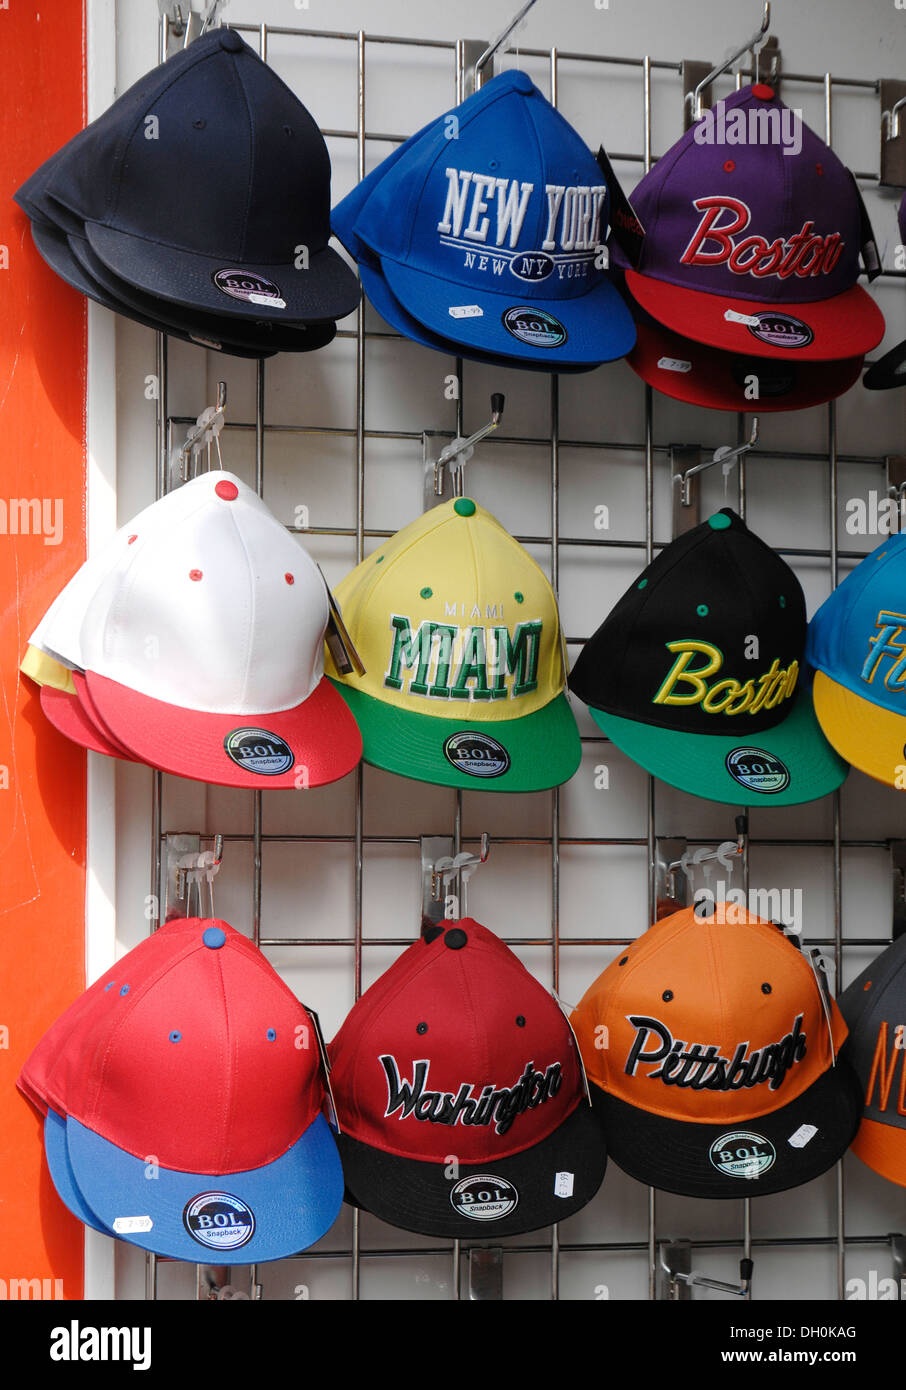 Baseball Caps Display In Shop Stock Photo 62095448 Alamy